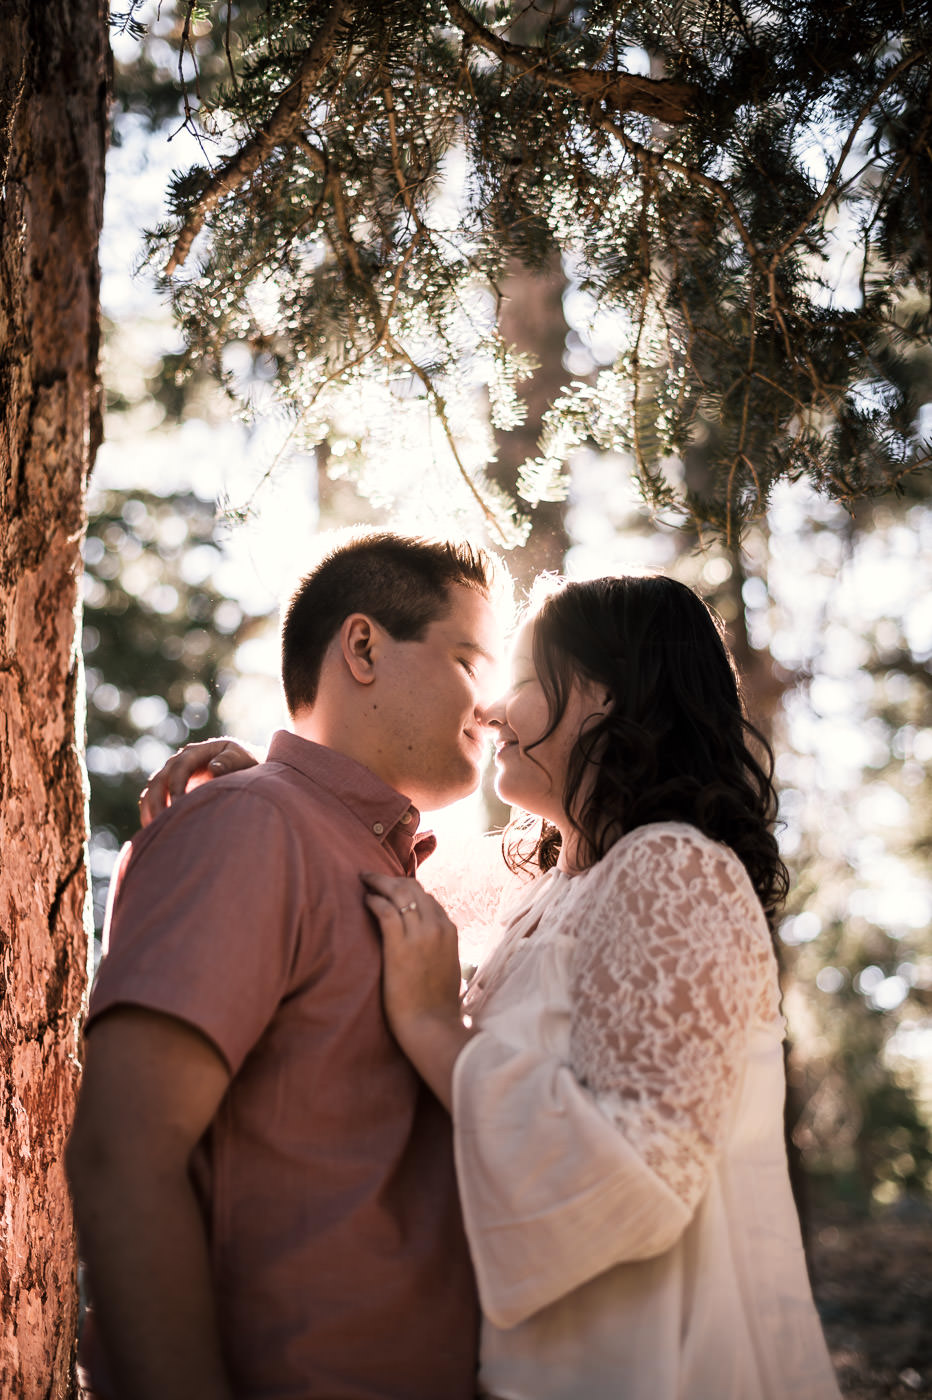 The bright light of sunset filters through the trees behind this engaged couple.